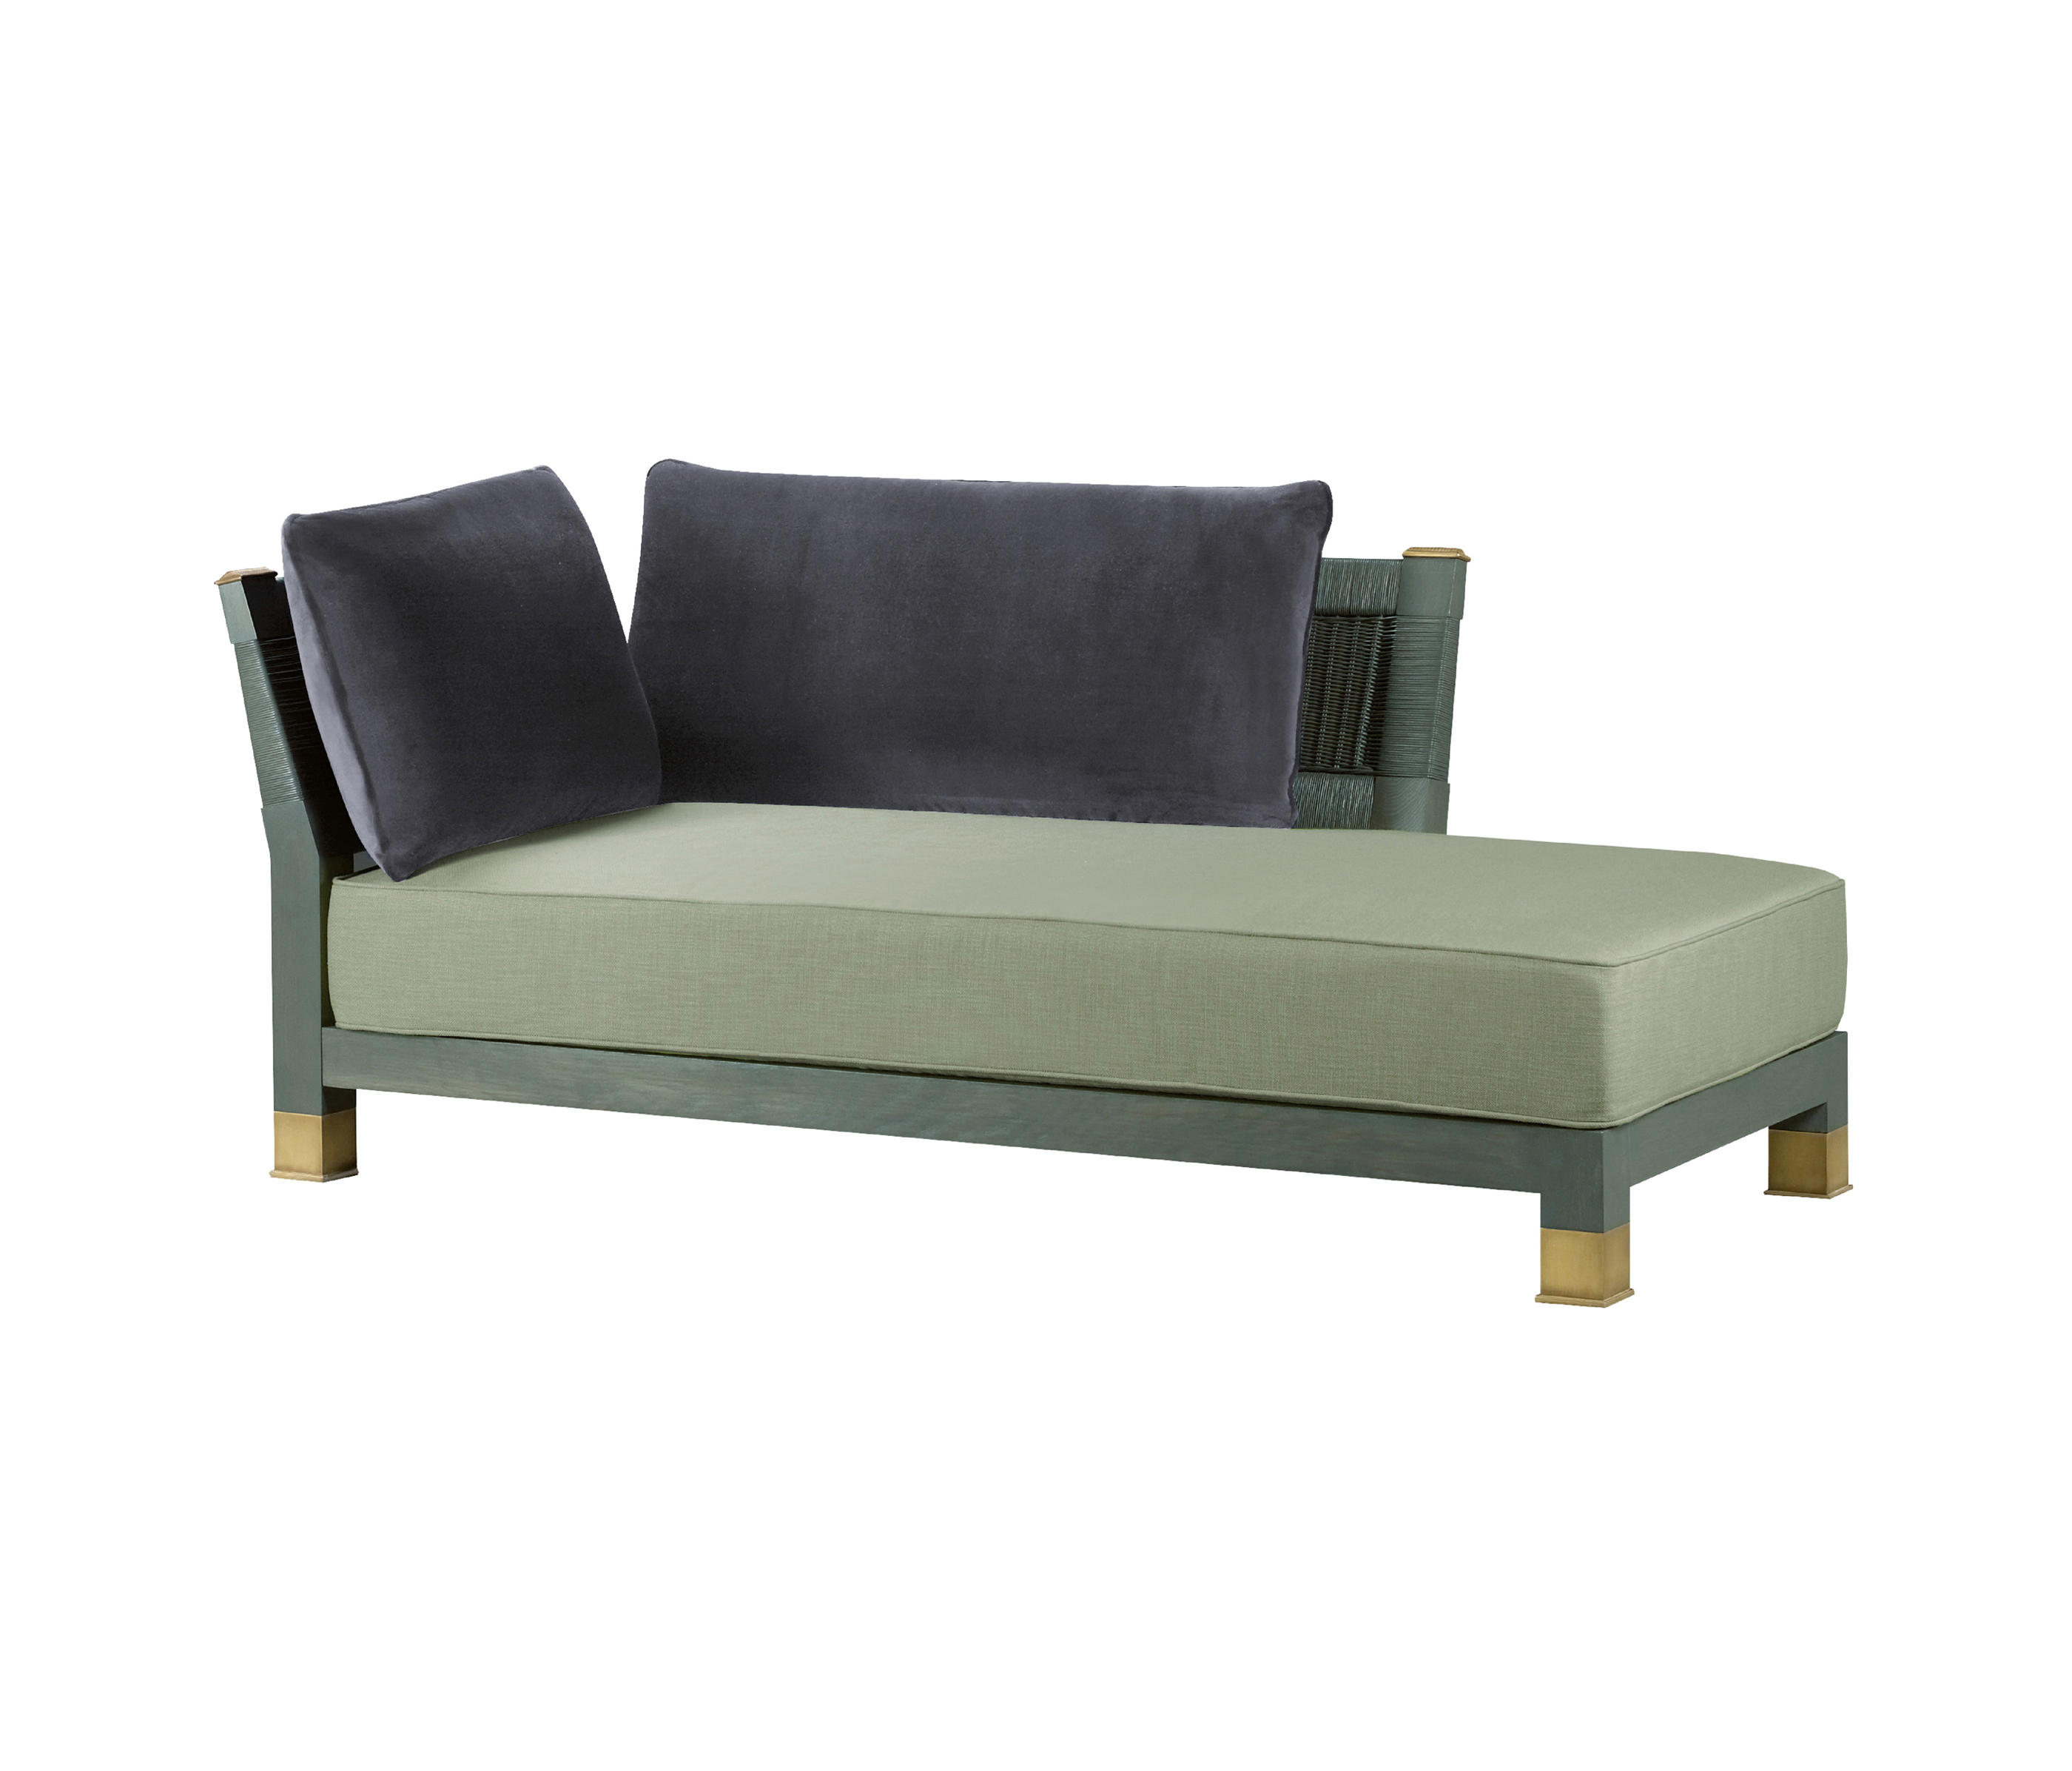 Chaise longue sofa 485 forum sofa with chaise longue by for Couch with 2 chaises